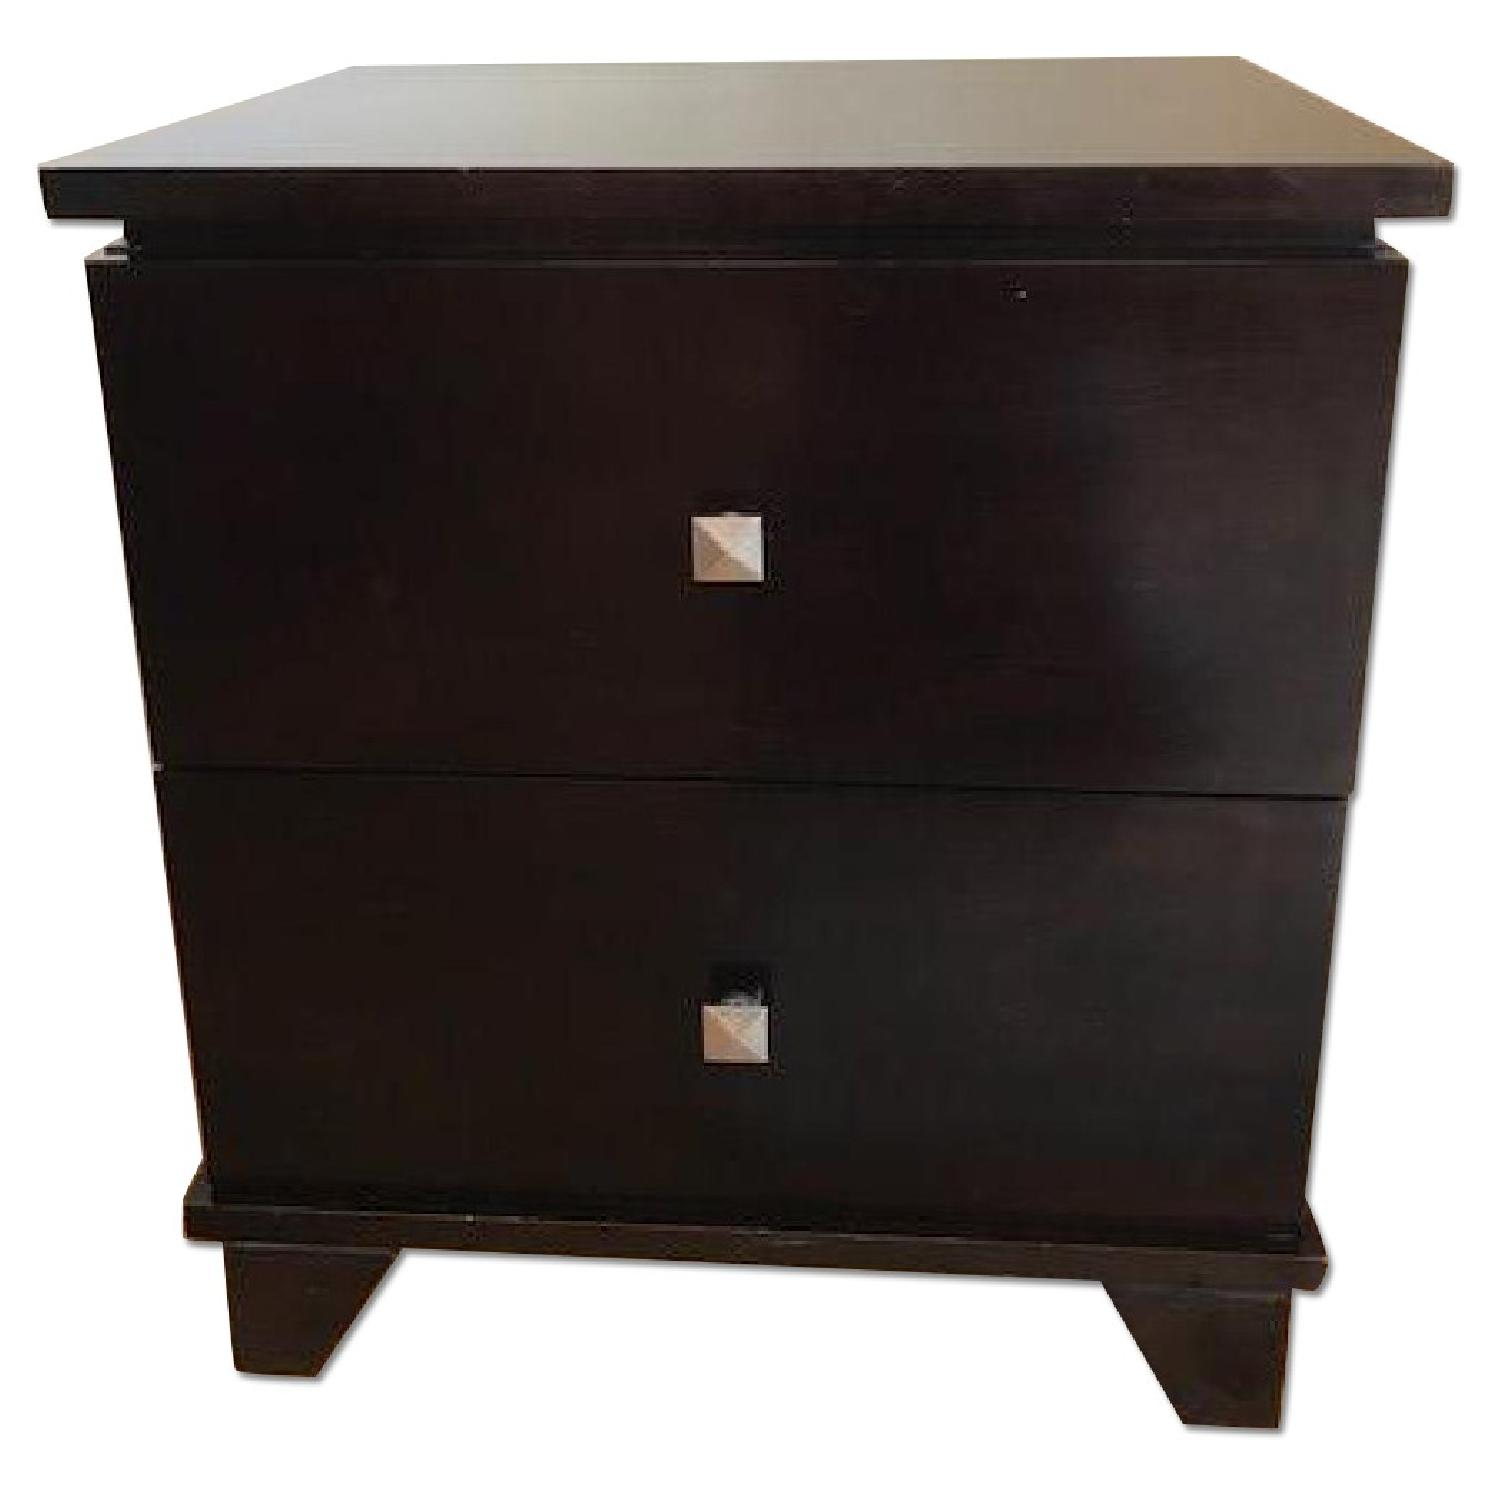 Ligna Furniture Two-Drawer Wooden Nightstands